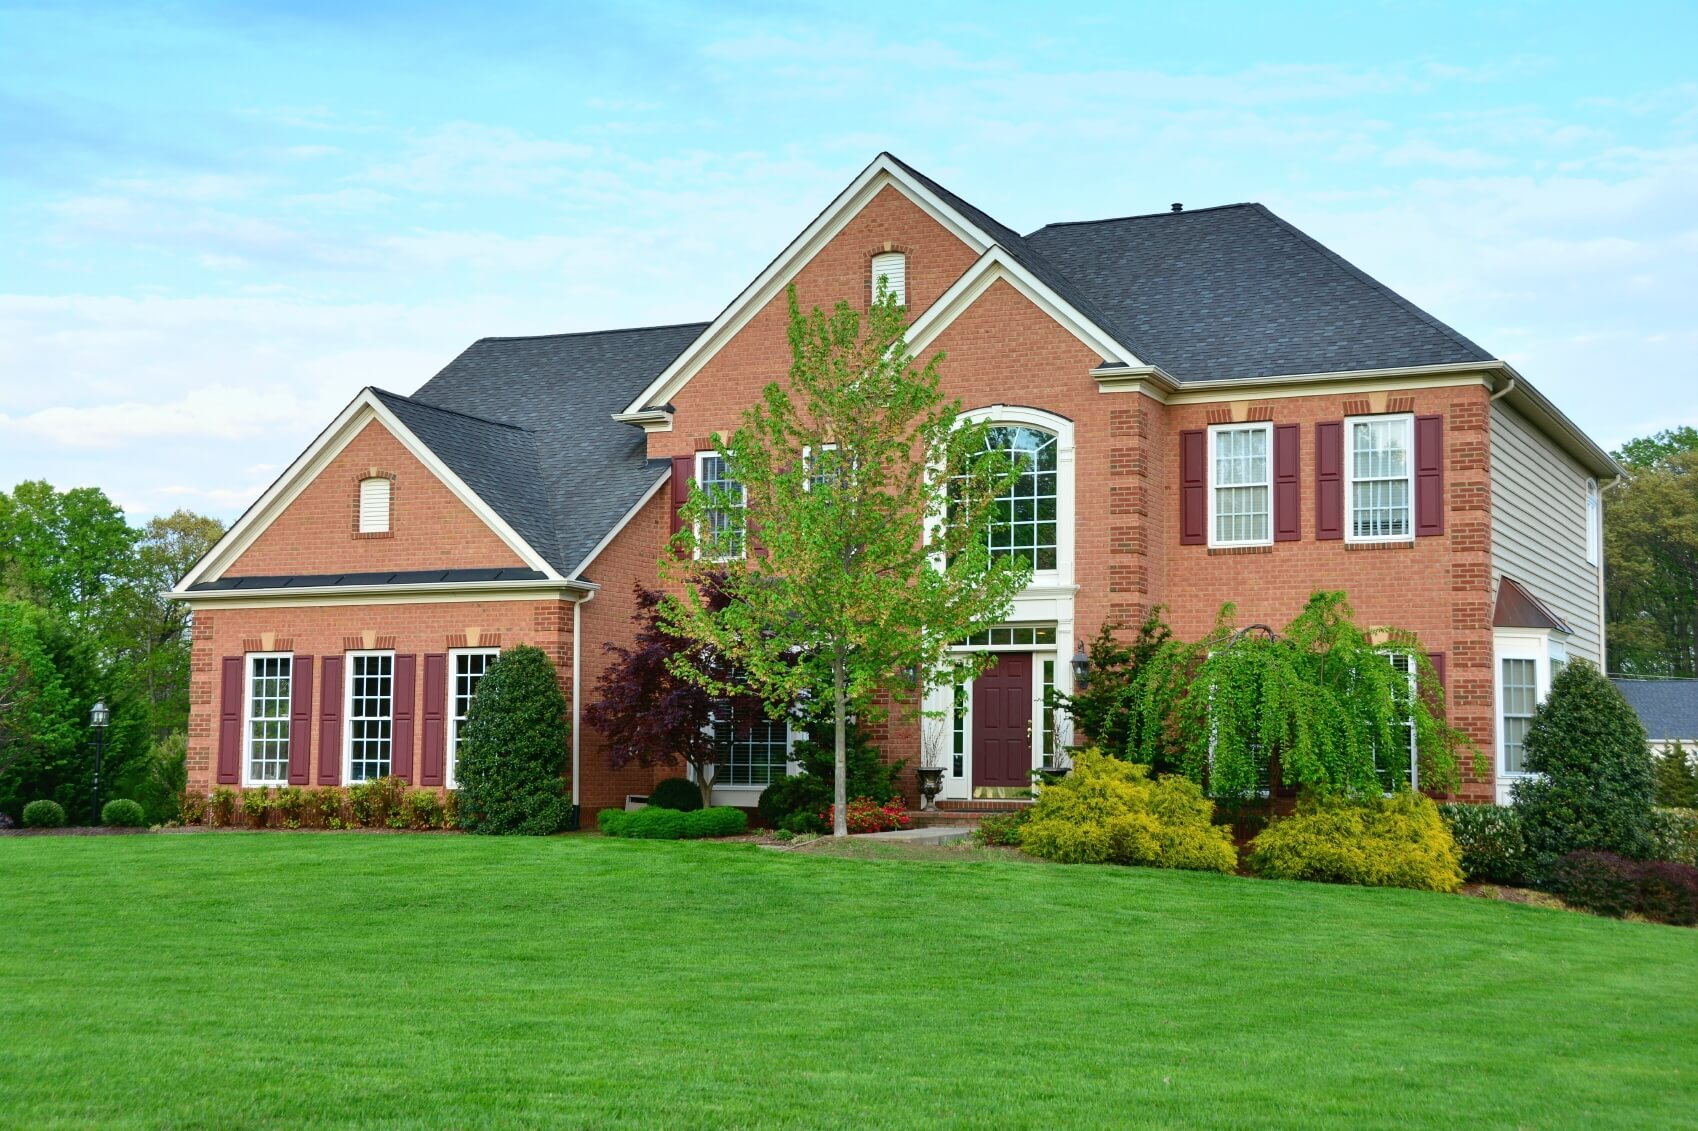 As seen here, a brick veneer is commonly used as an accent piece to a home while the rest of it is covered with siding or another material. Made of fired clay, bricks come in a variety of colors, sizes, textures, and designs. They can be stacked and laid in many different patterns to create a multitude of options.